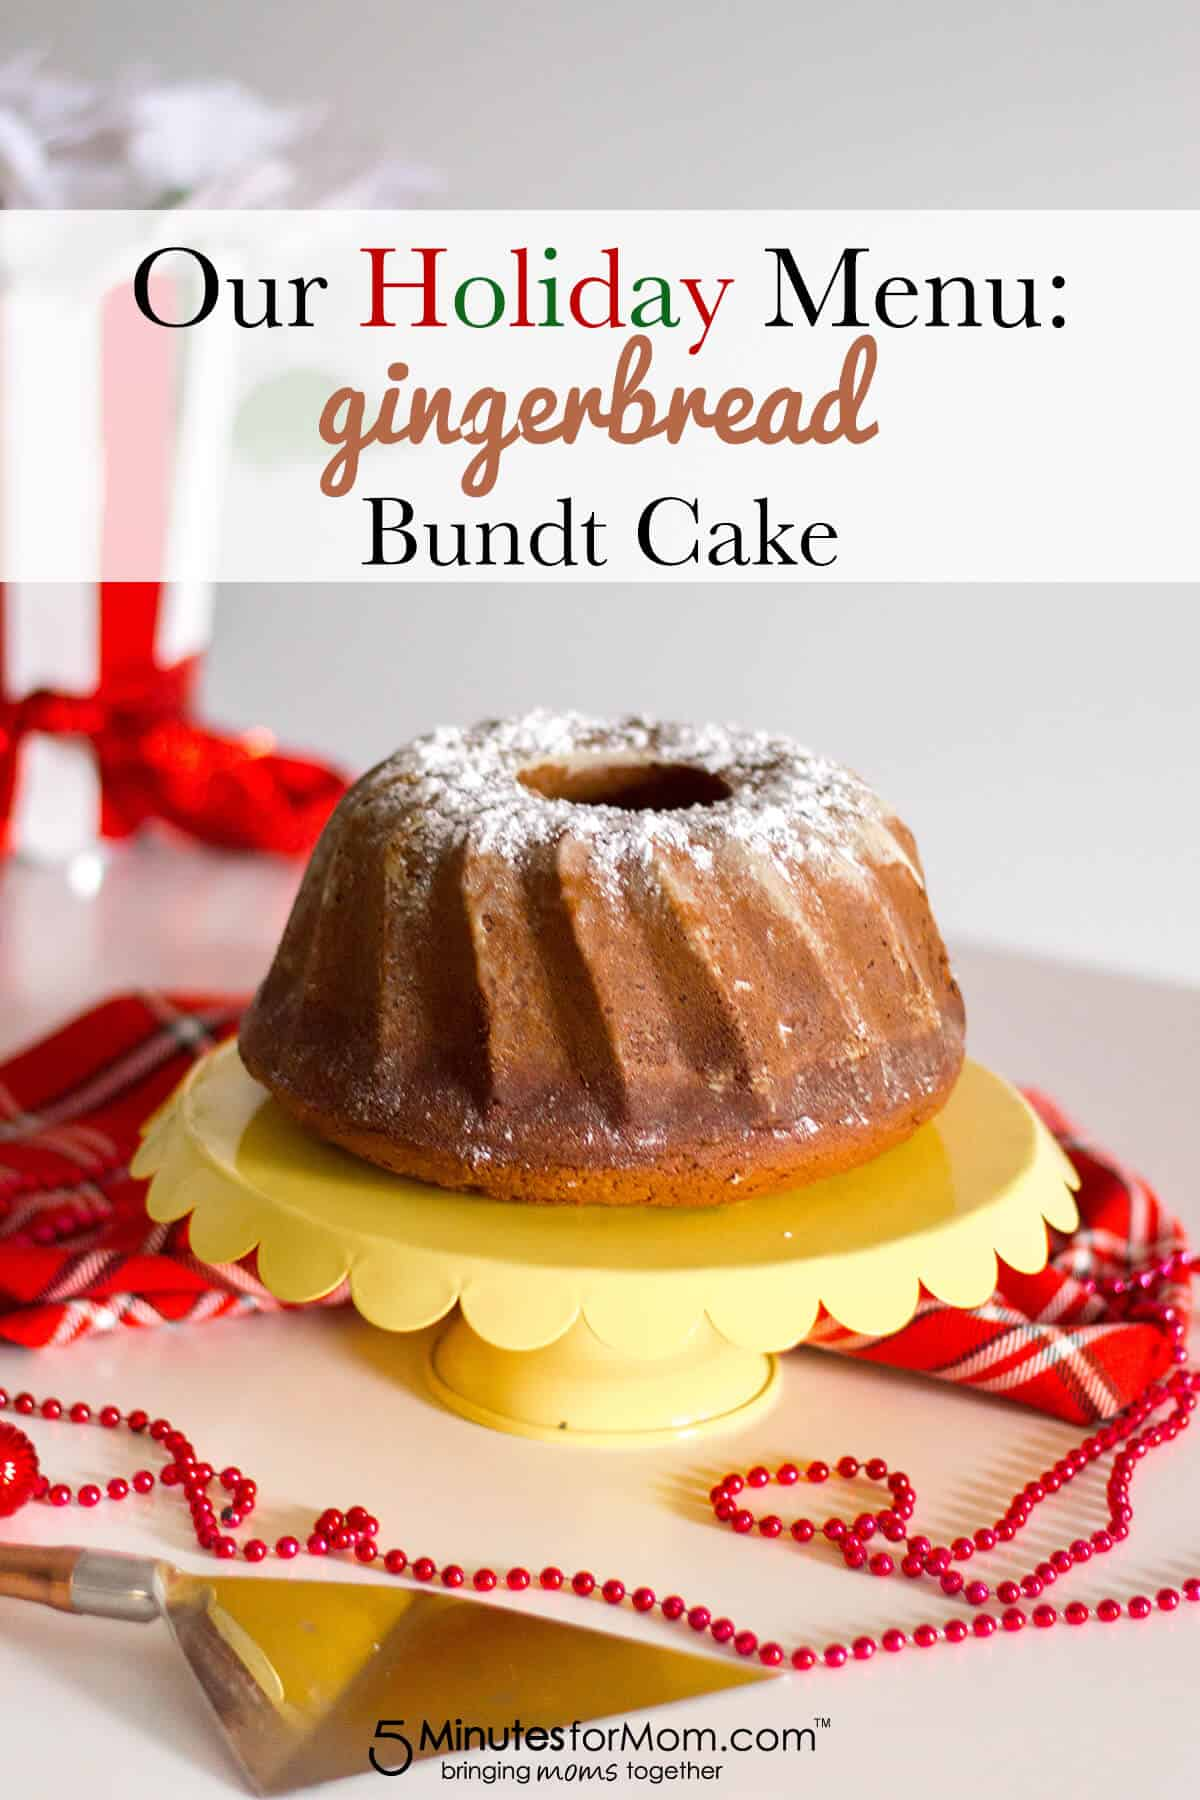 Giving a holiday favourite a creative twist with this homemade, from scratch Gingerbread Bundt Cake.